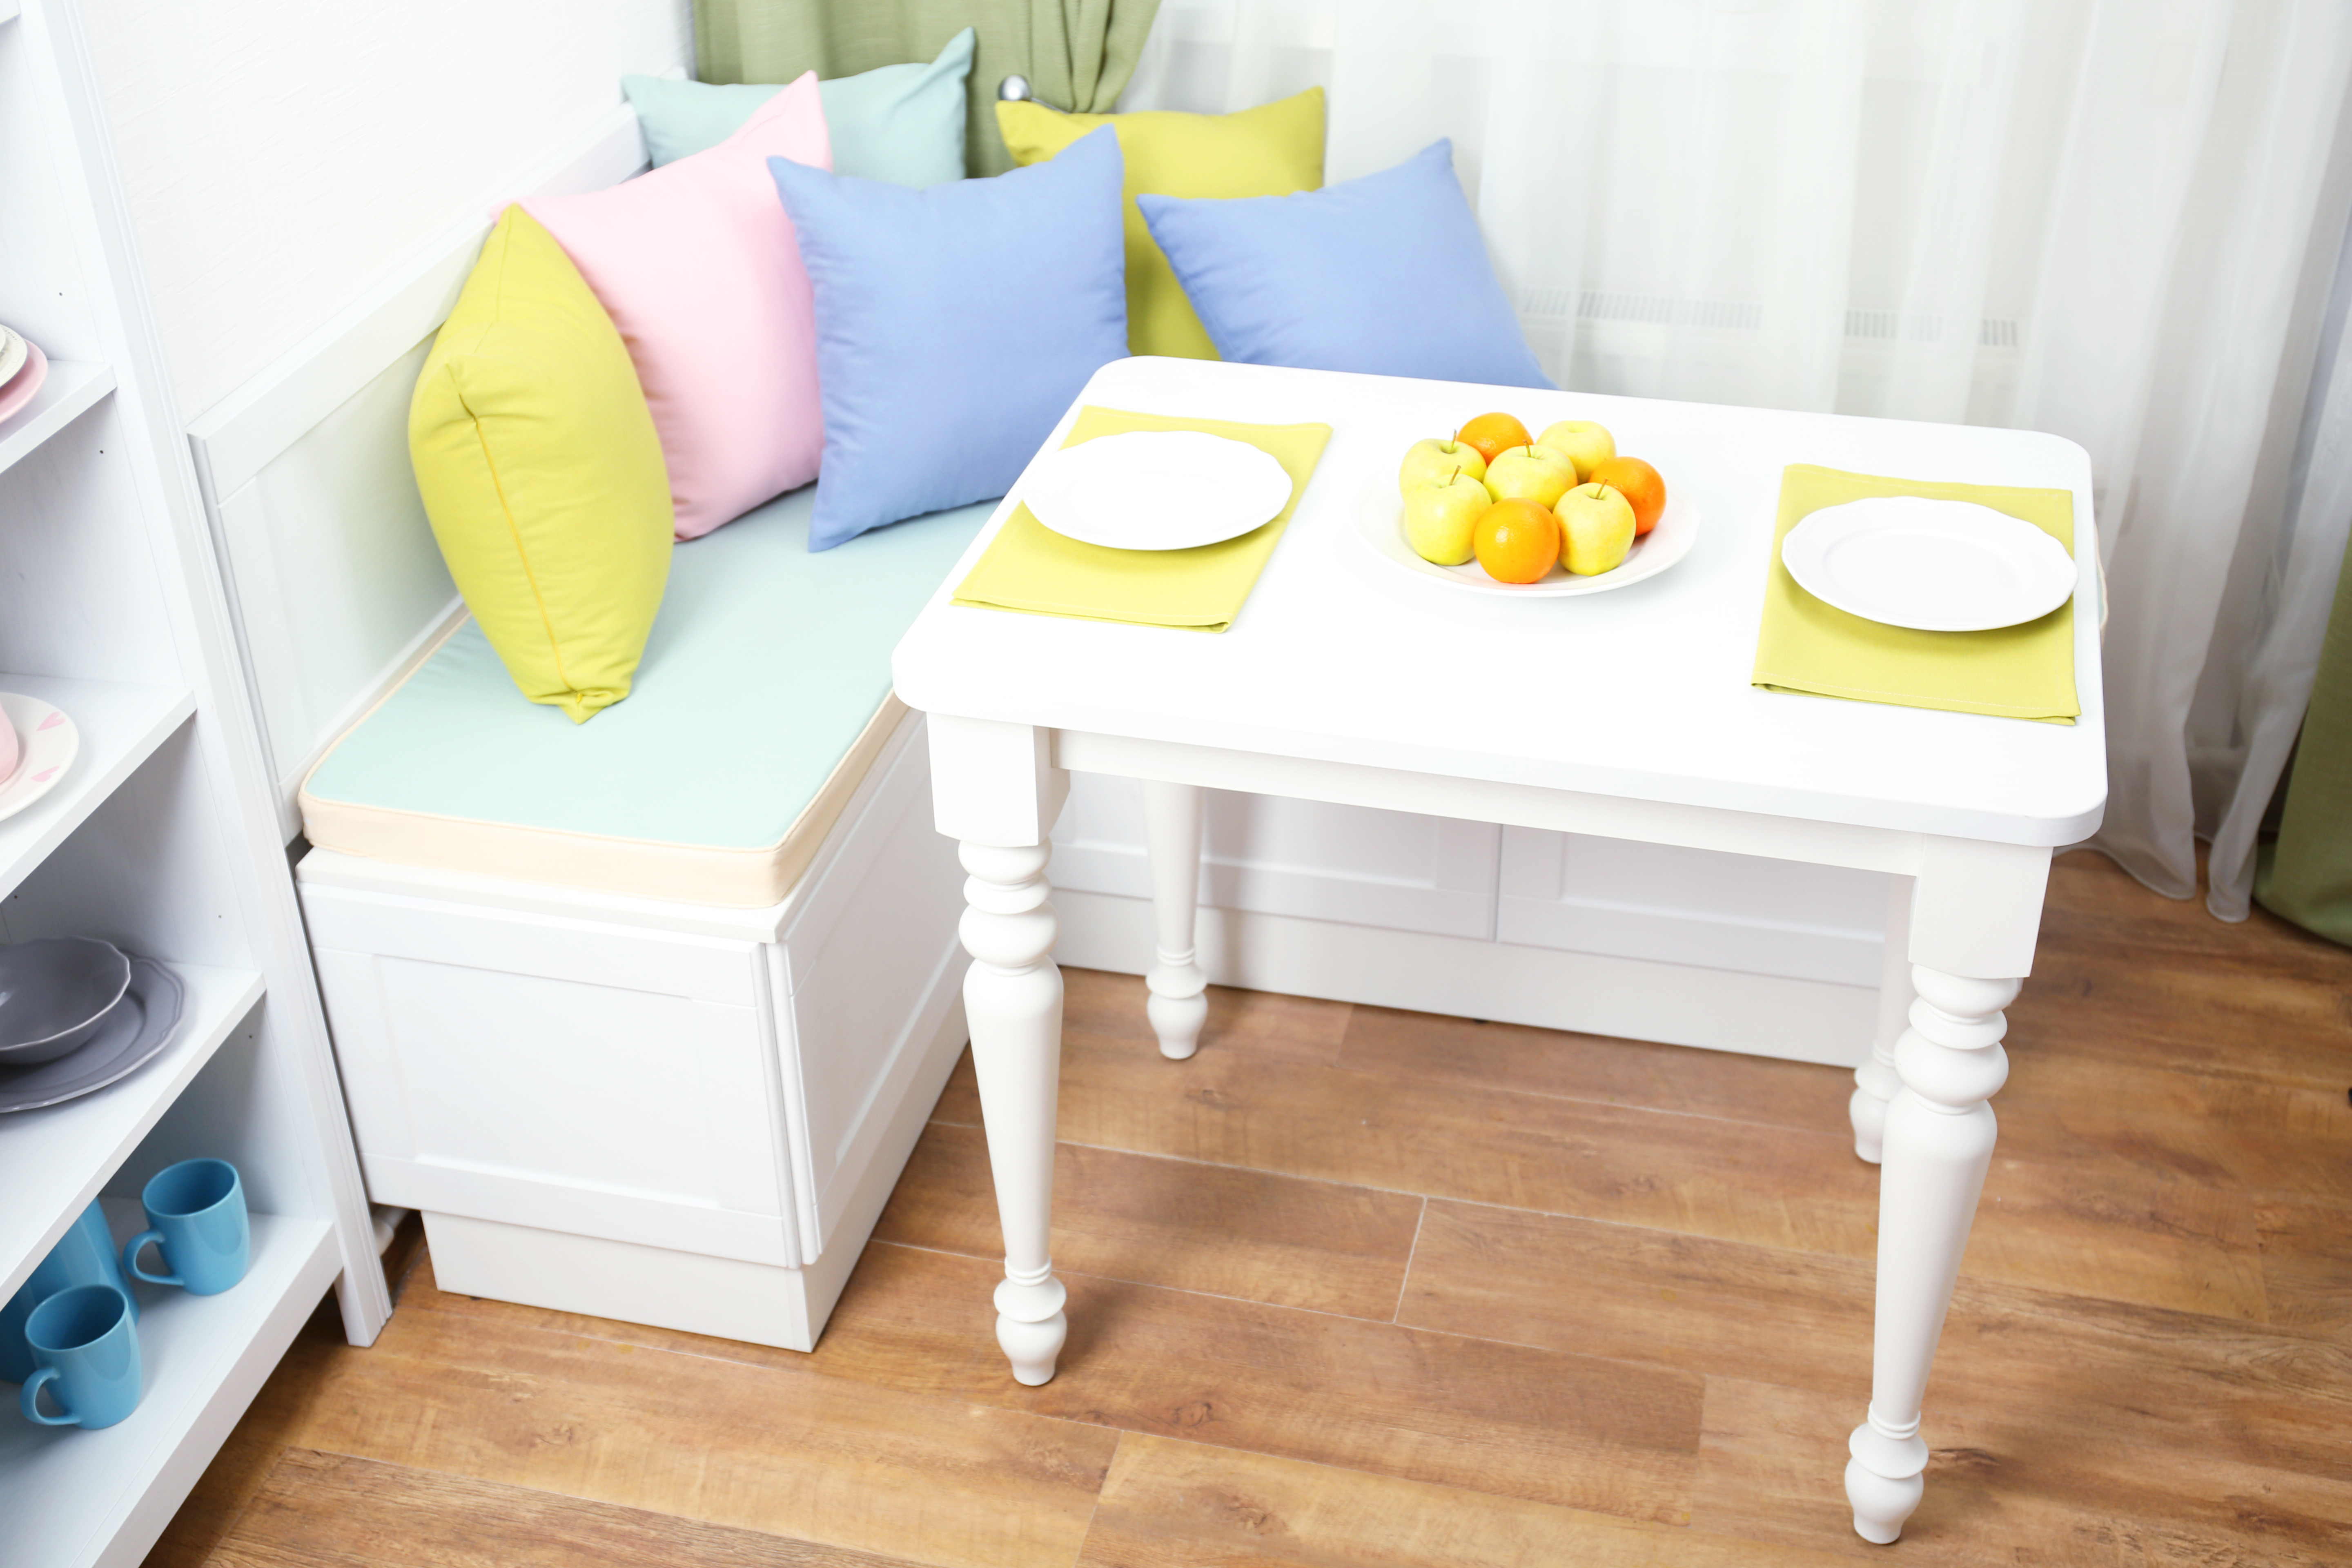 A built-in breakfast nook with a table.